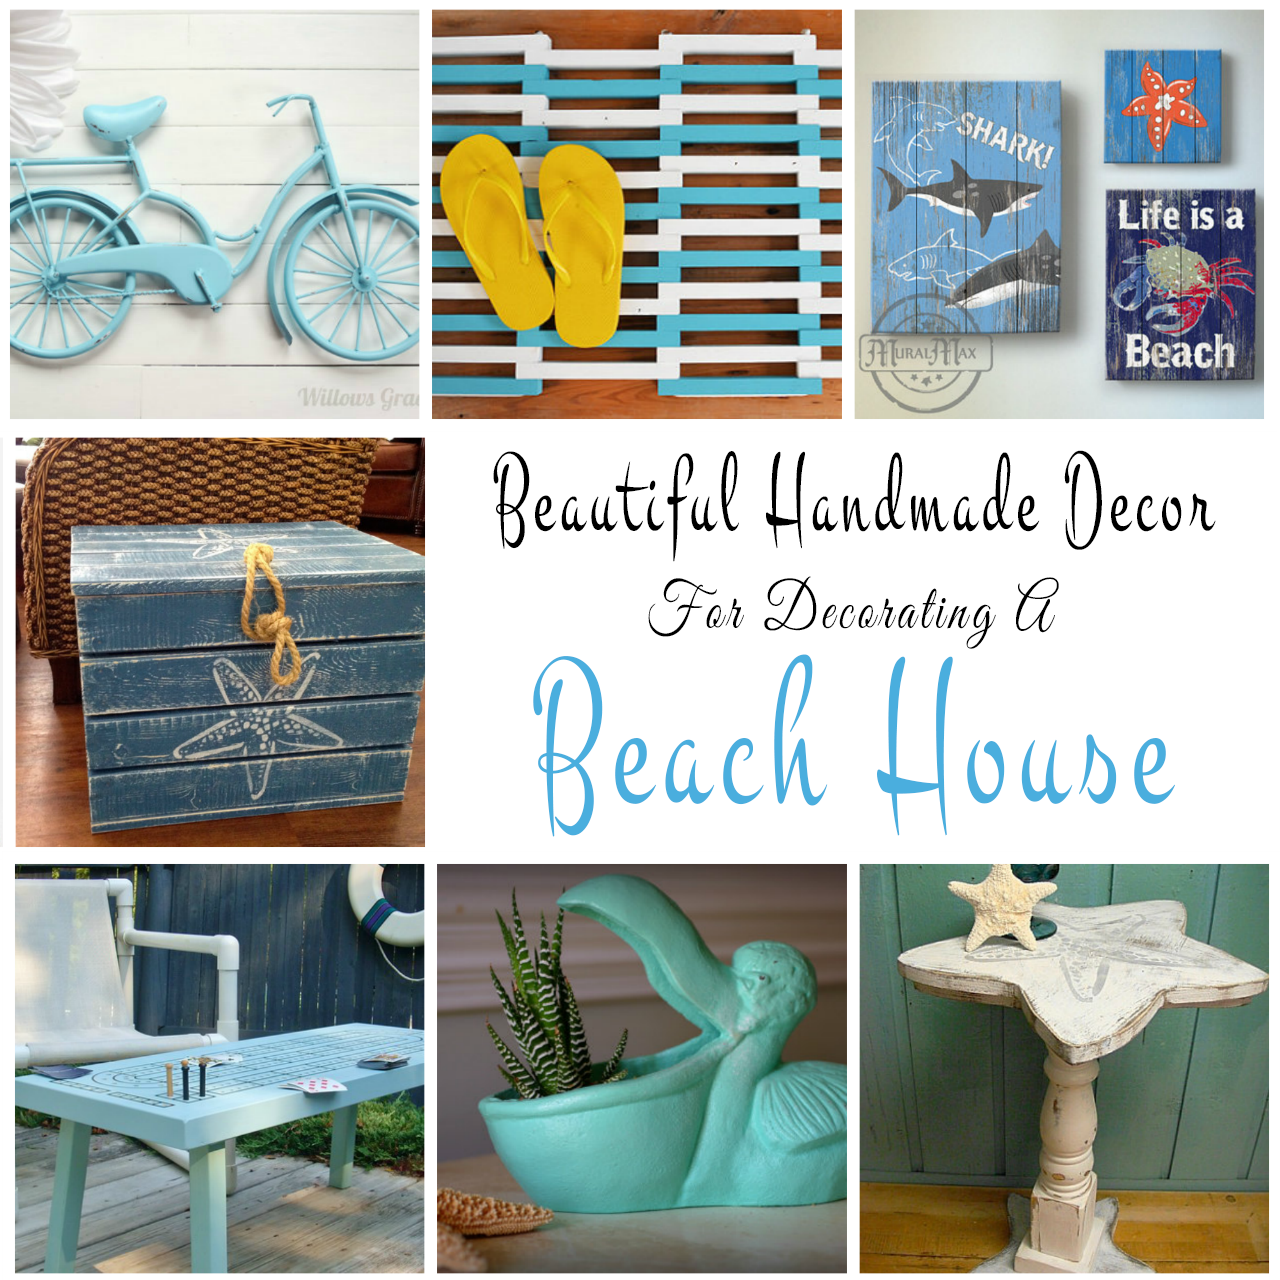 25 Handmade Decor Ideas For Decorating A Beach House Glitter 39 N Spice